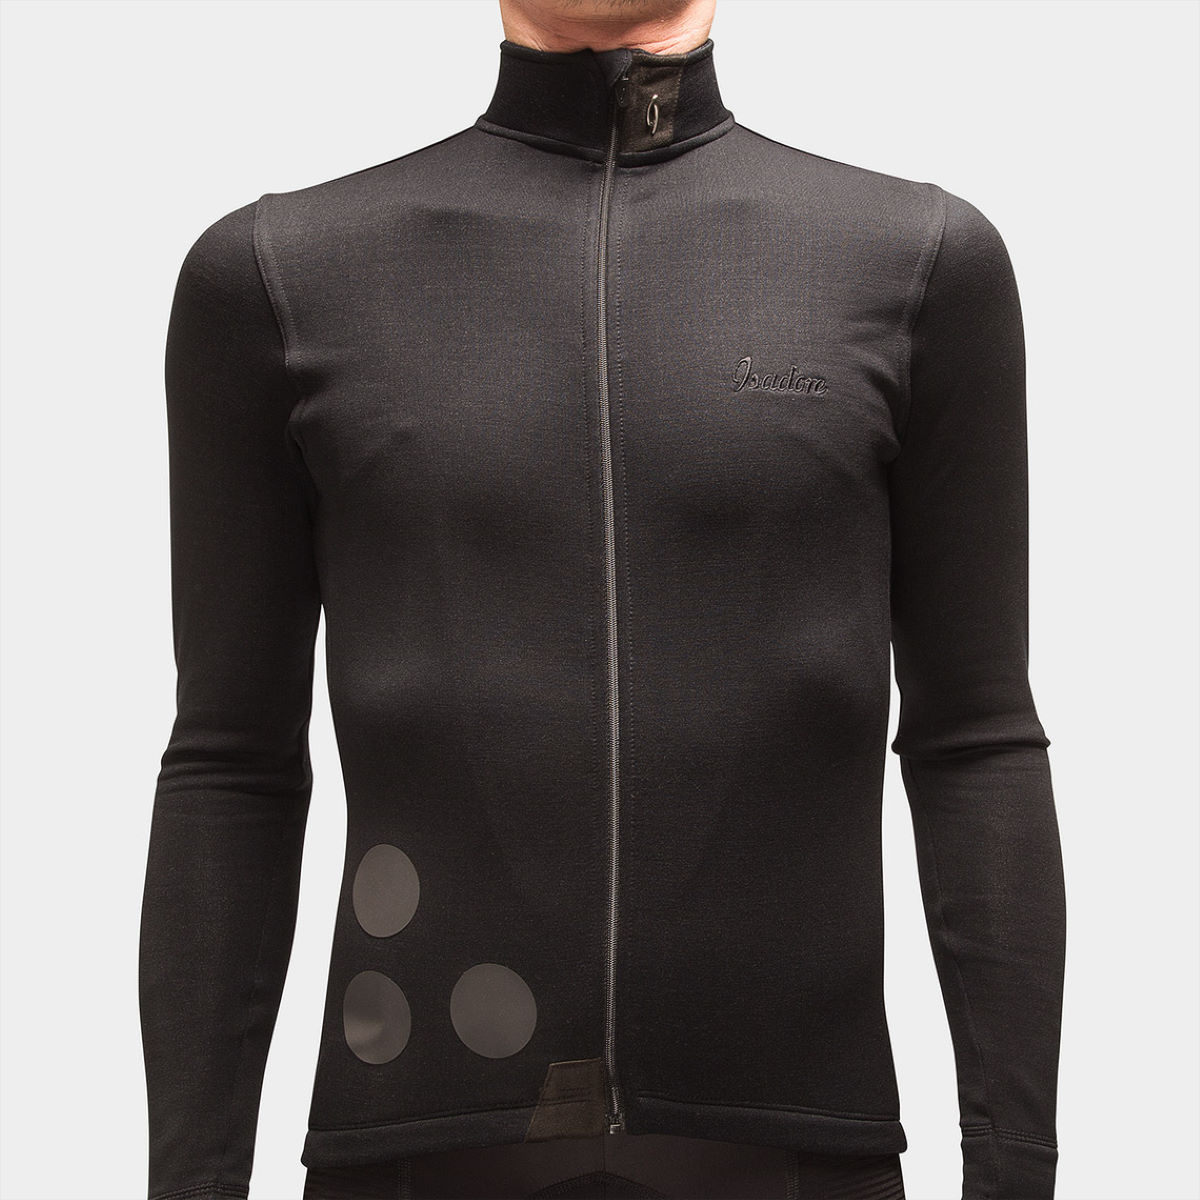 Maillot Isadore Thermerino (manches longues) - S Noir Maillots